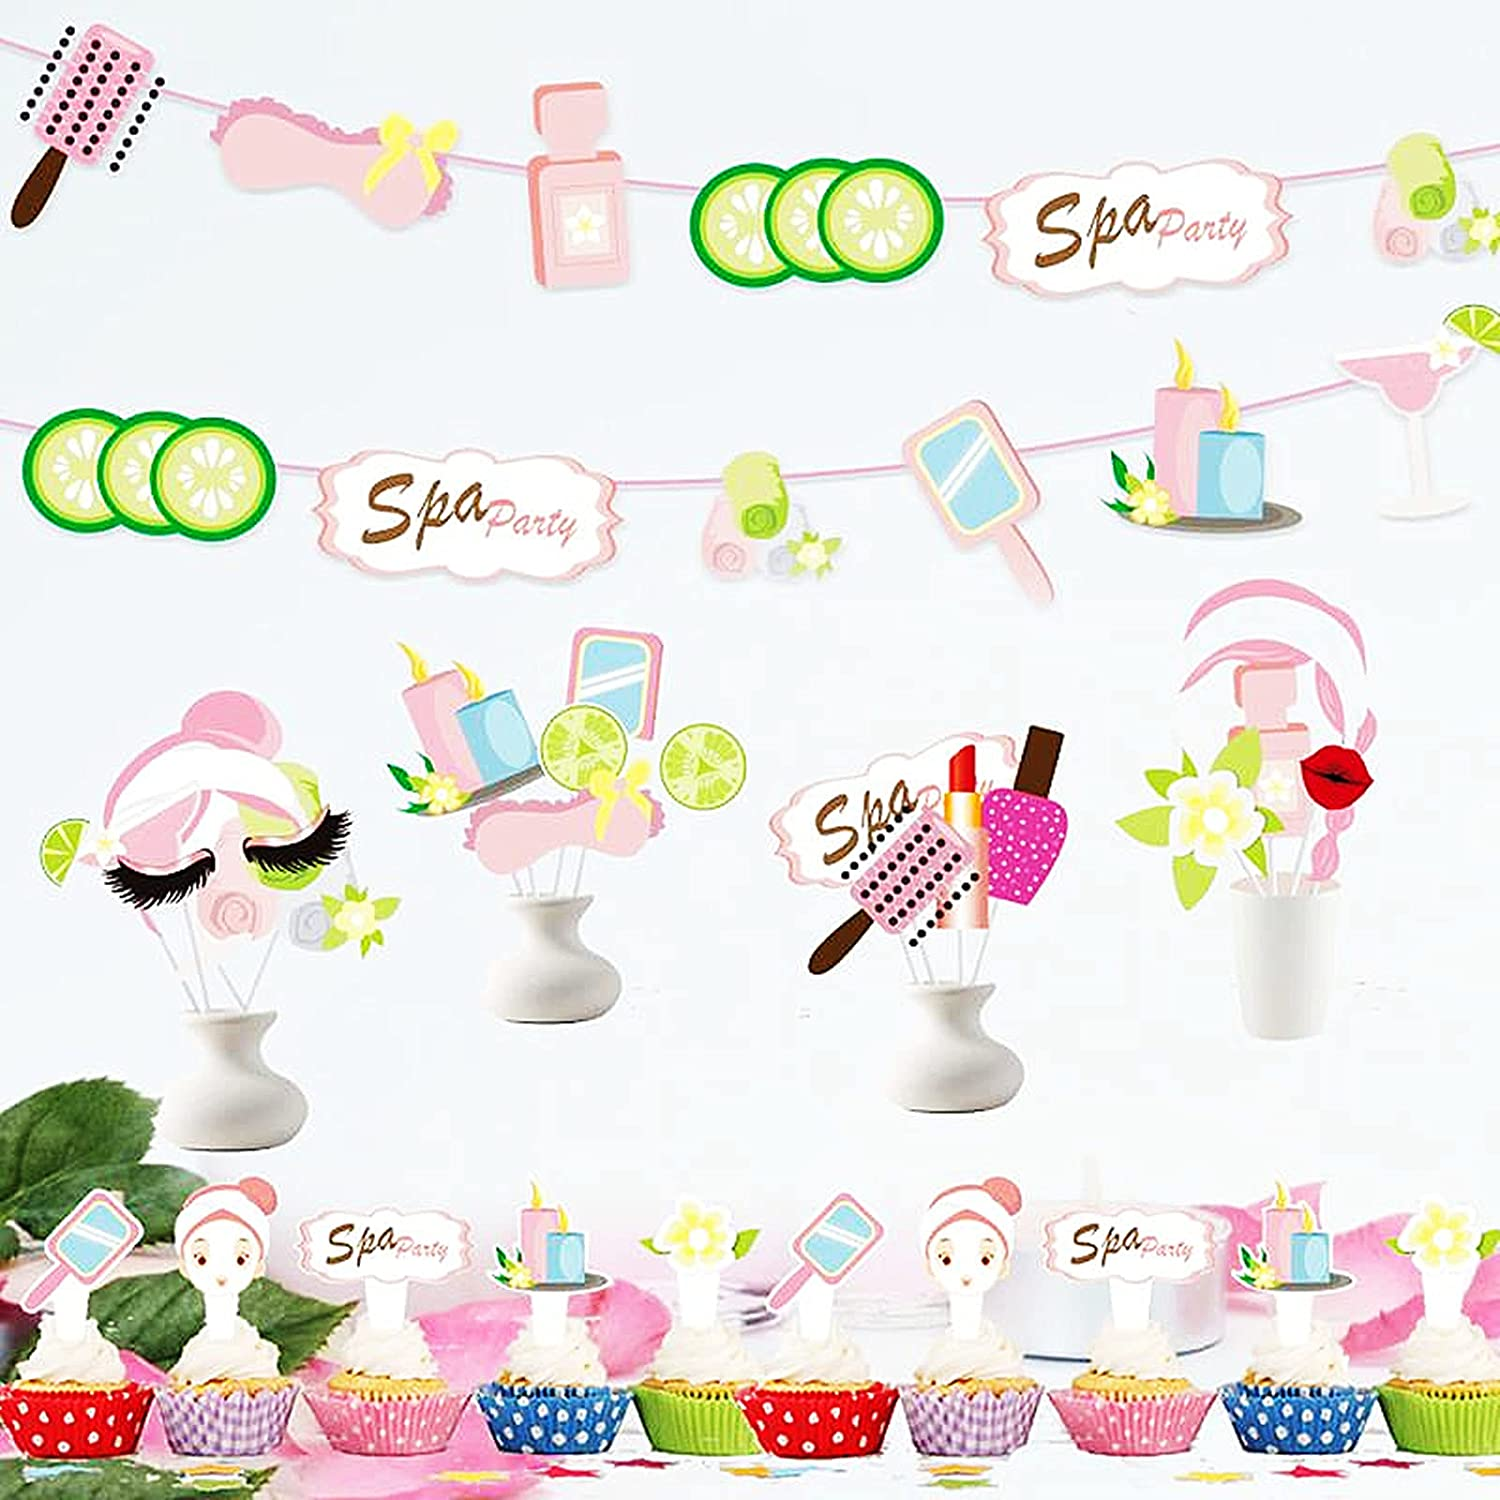 Spa Party Balloons,Red Lipstick and Kissy Lips balloon,Spa Party Garland Banner 62 PCS Spa Party Decoration Supplies Cupcake Toppers,Photo Booth Props for Spa Theme Birthday,Make Up First Birthday